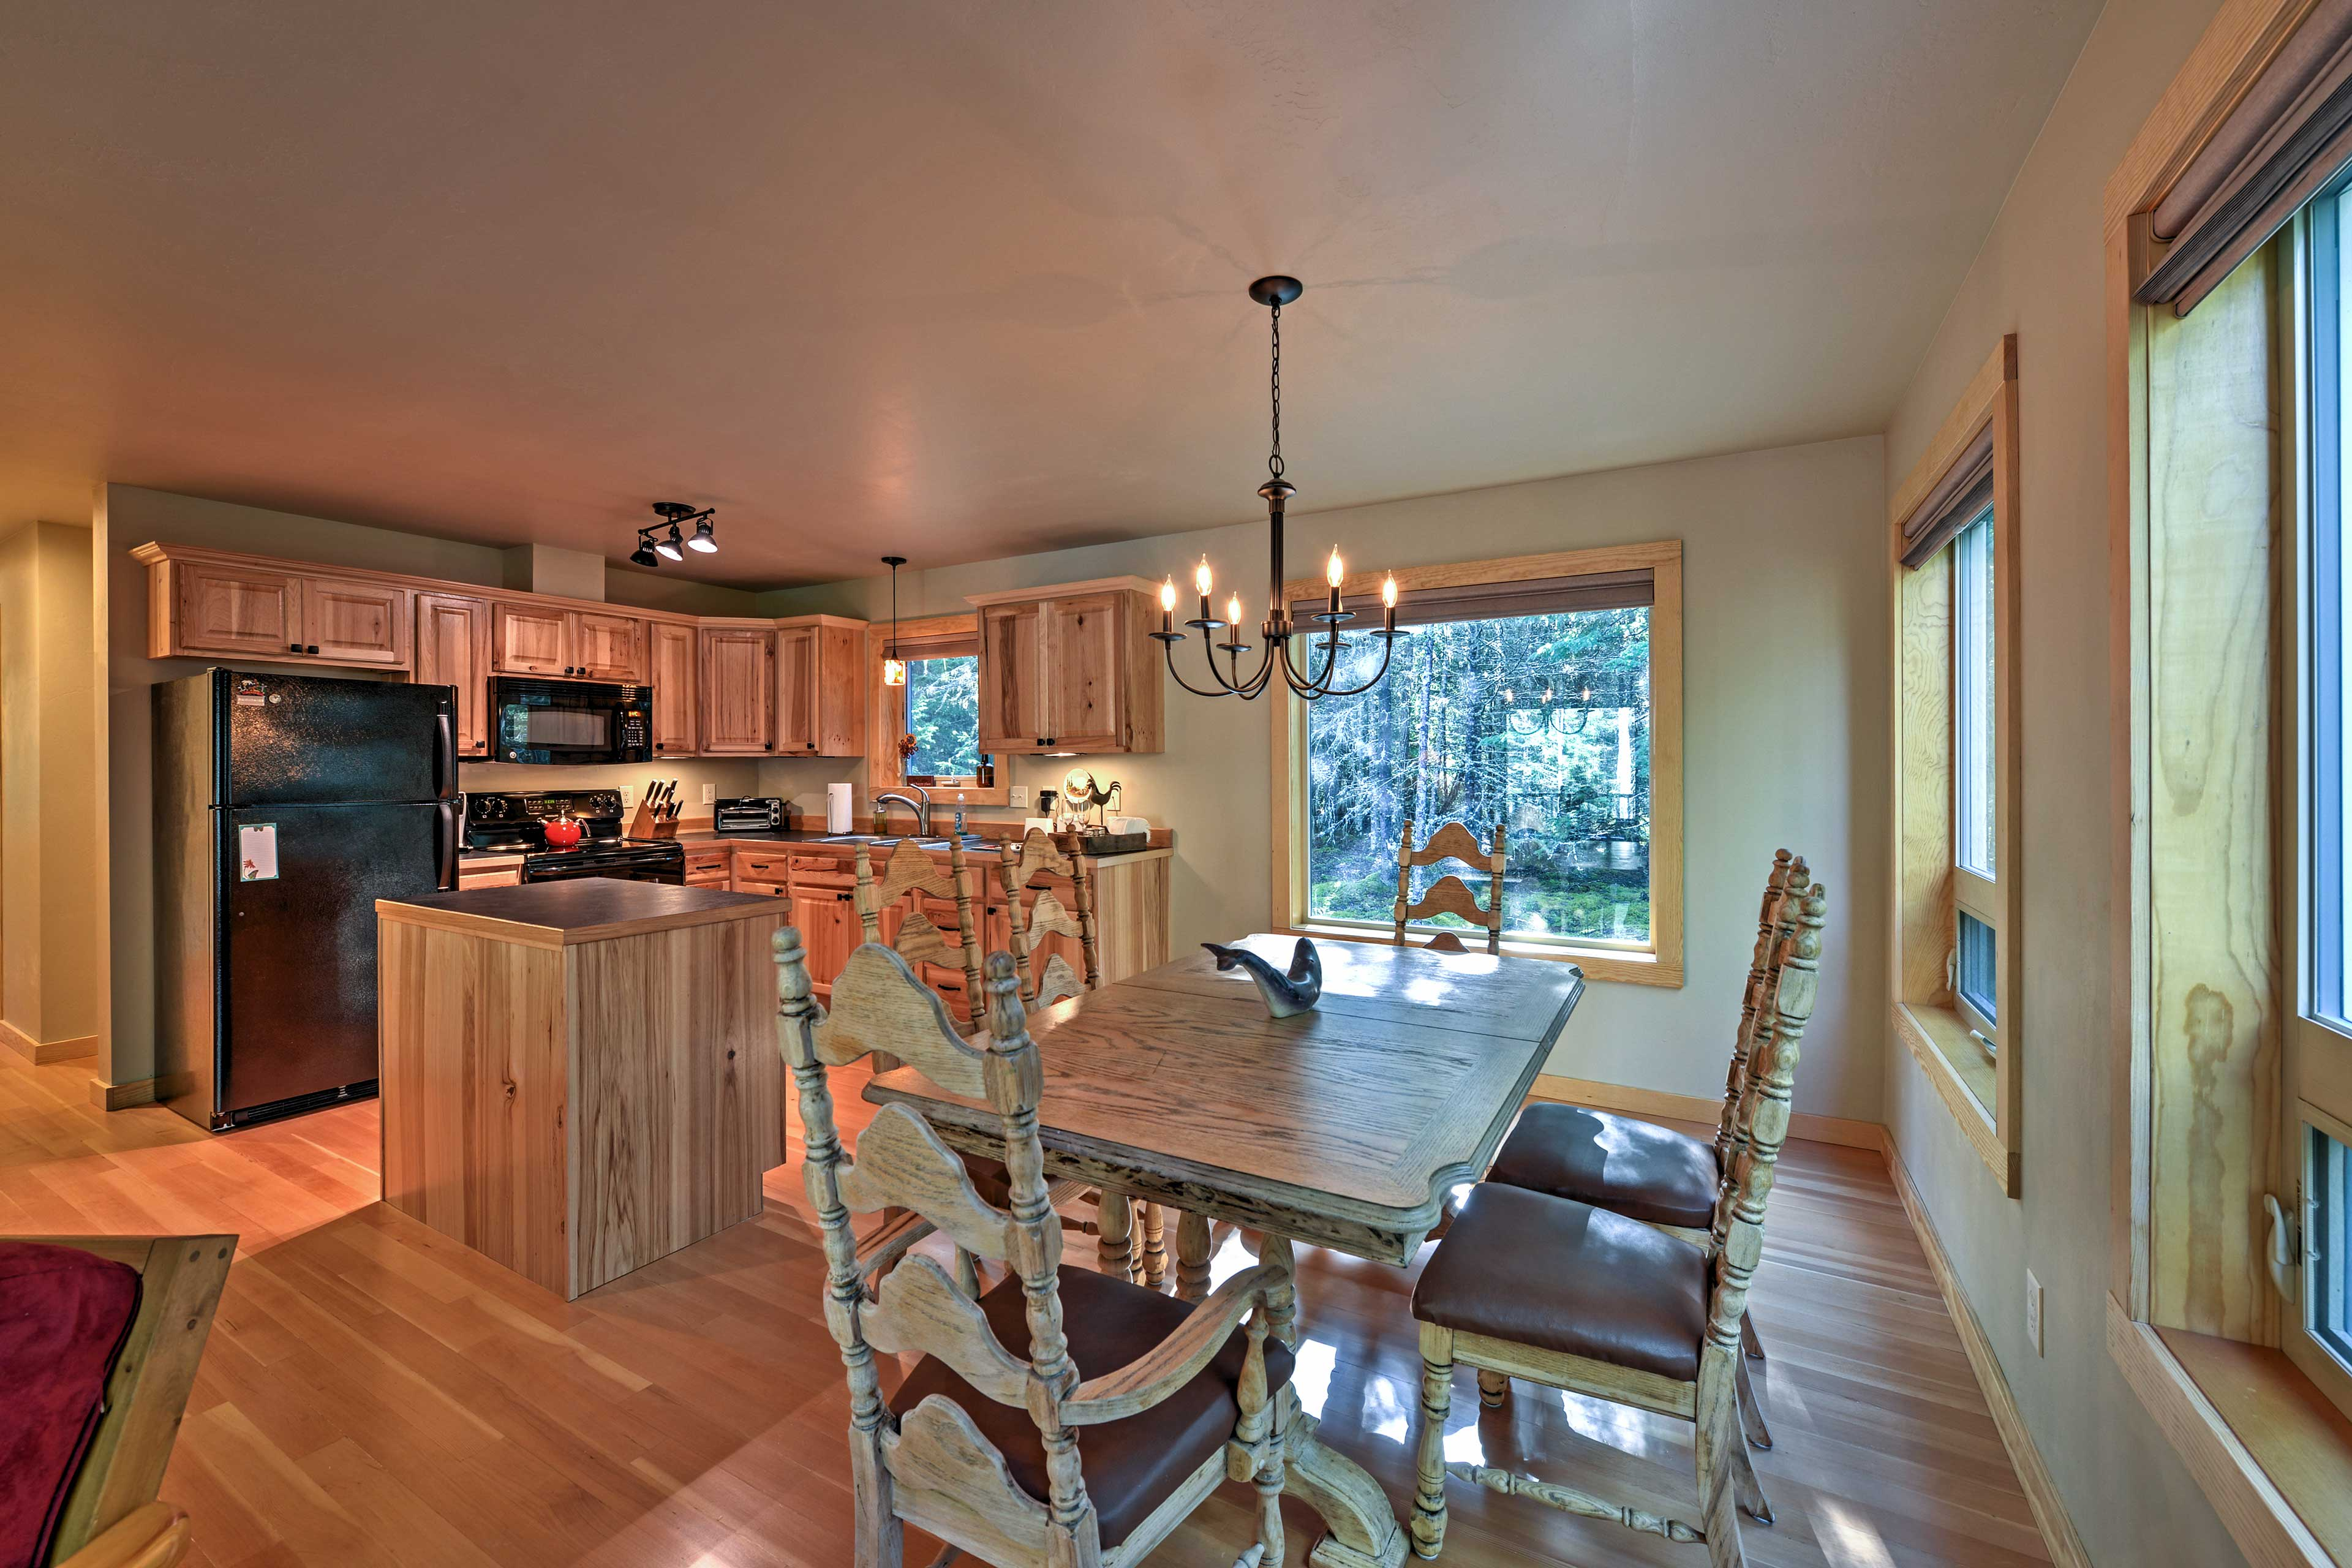 An open floor plan combines the dining area and kitchen for easy entertaining.